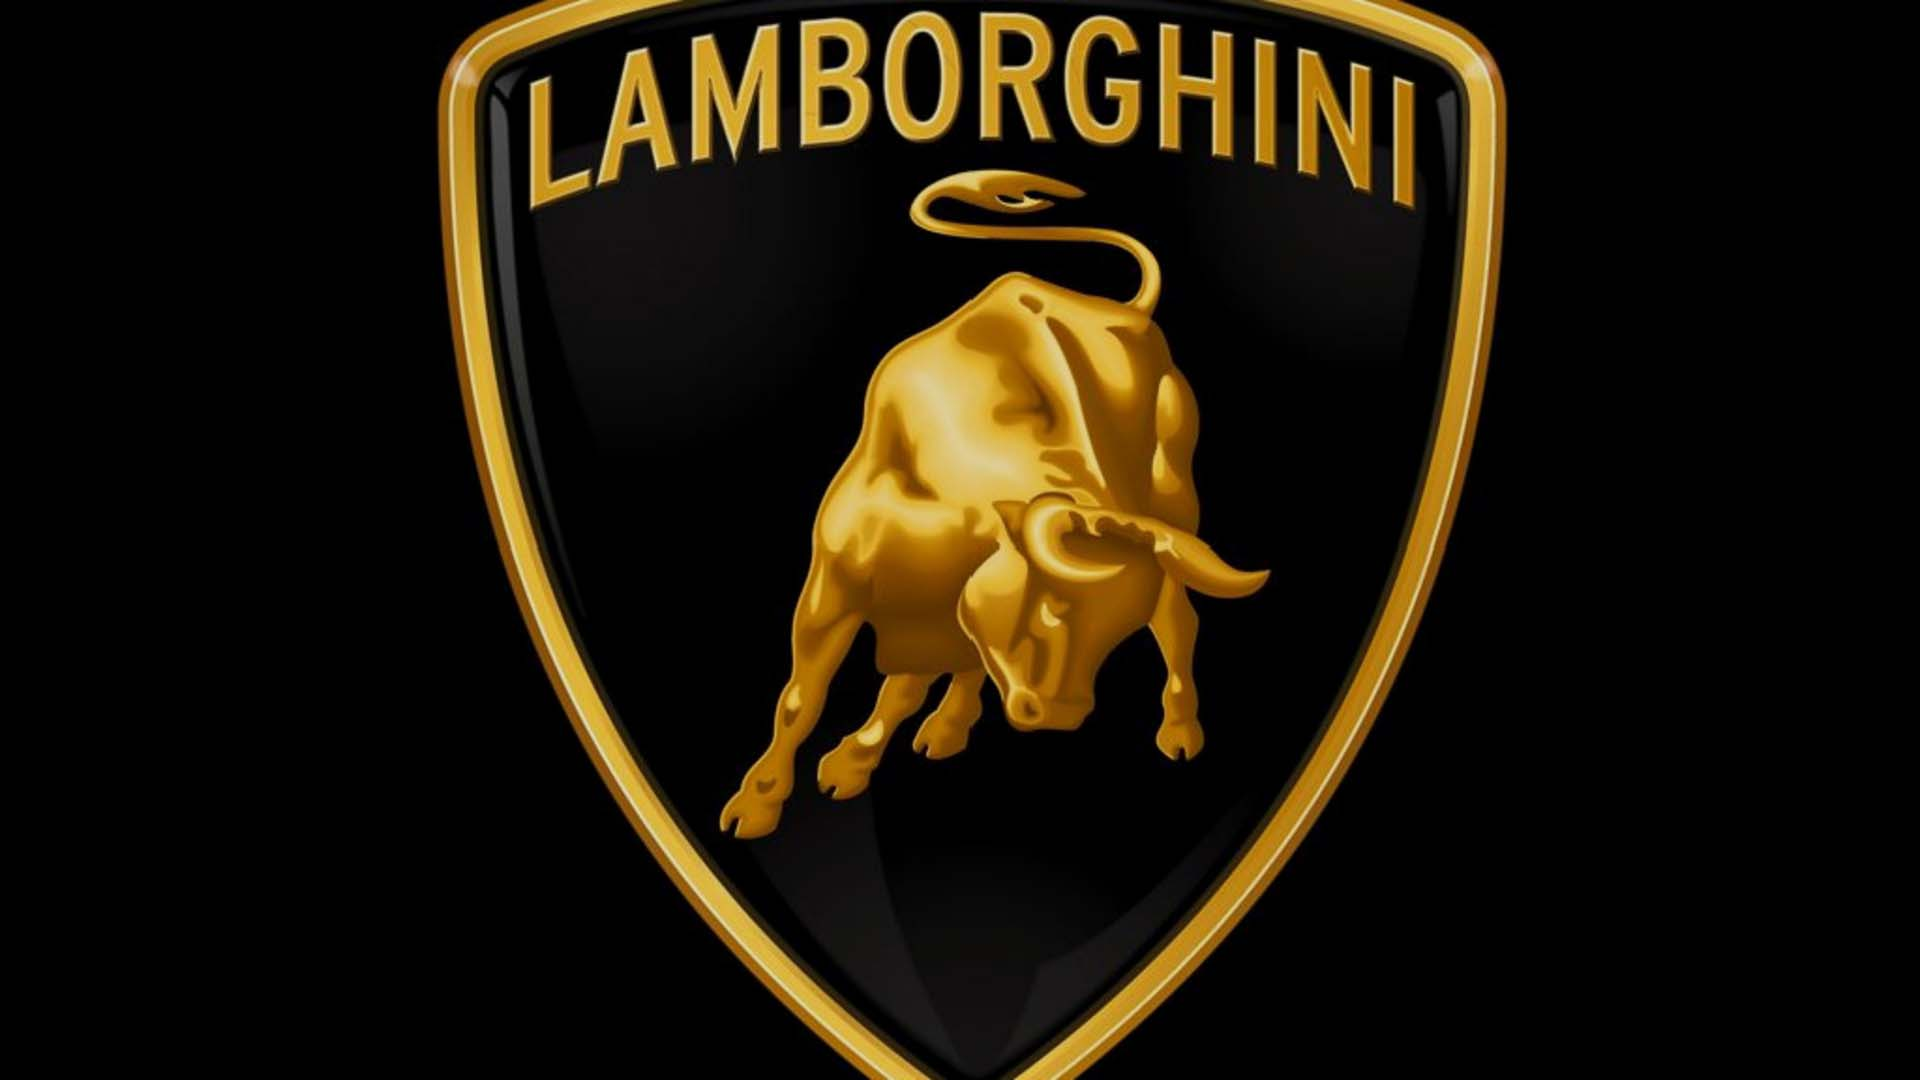 High Resolution Lamborghini Wallpapers   Original Preview   PIC 1924 1920x1080